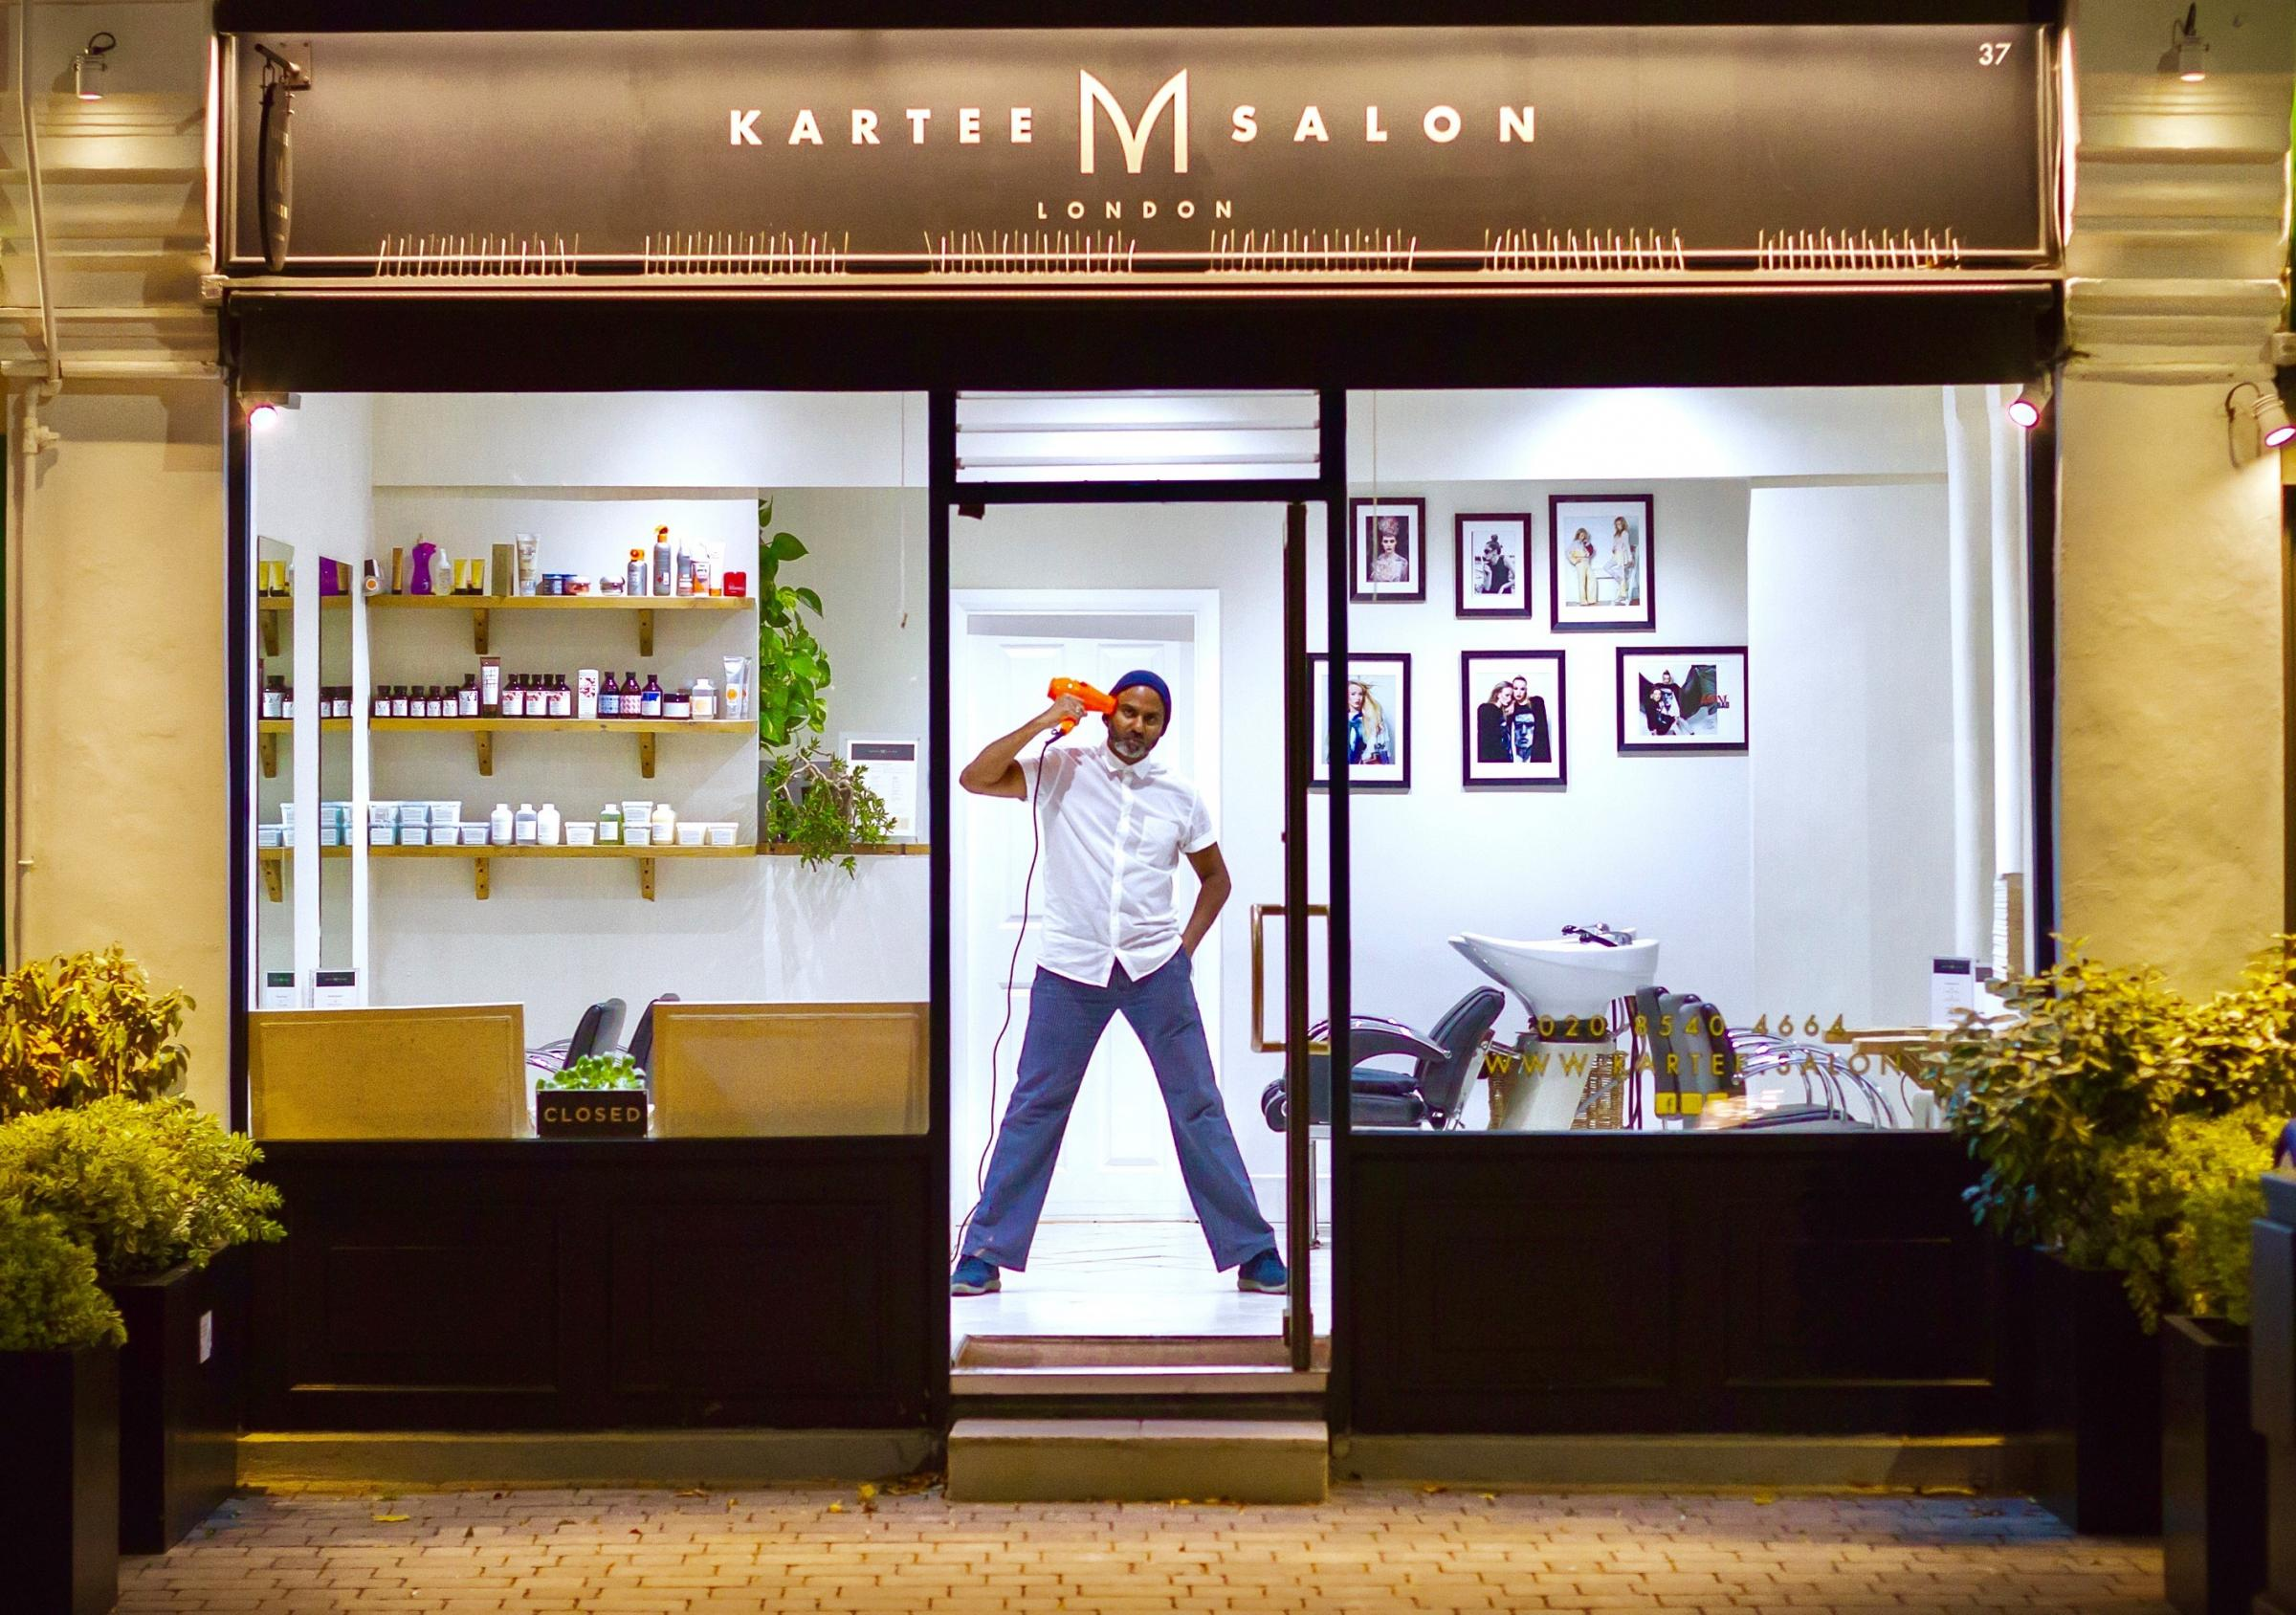 Colliers Wood salon, Kartee M Salon, has reason to celebrate